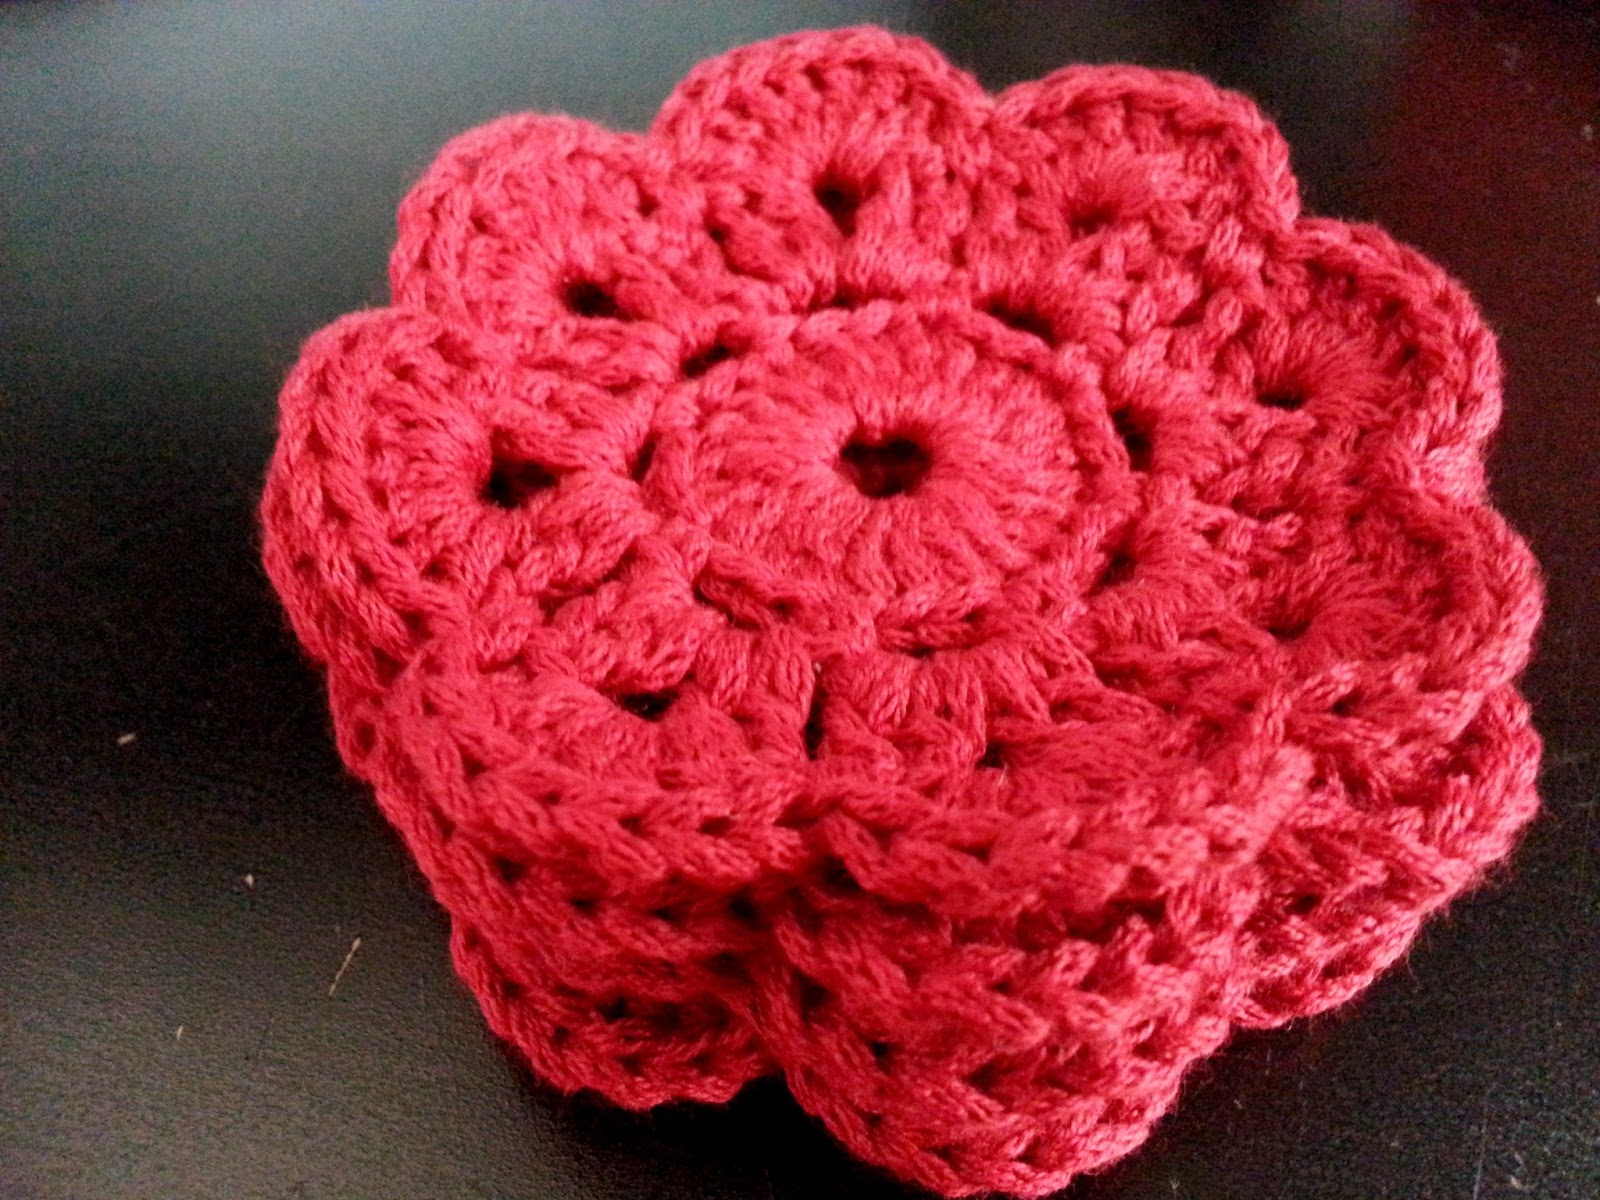 Maybelle crochet flower coasters mmx1 week 2 bag n craft crocheted a total of 6 pieces bankloansurffo Images